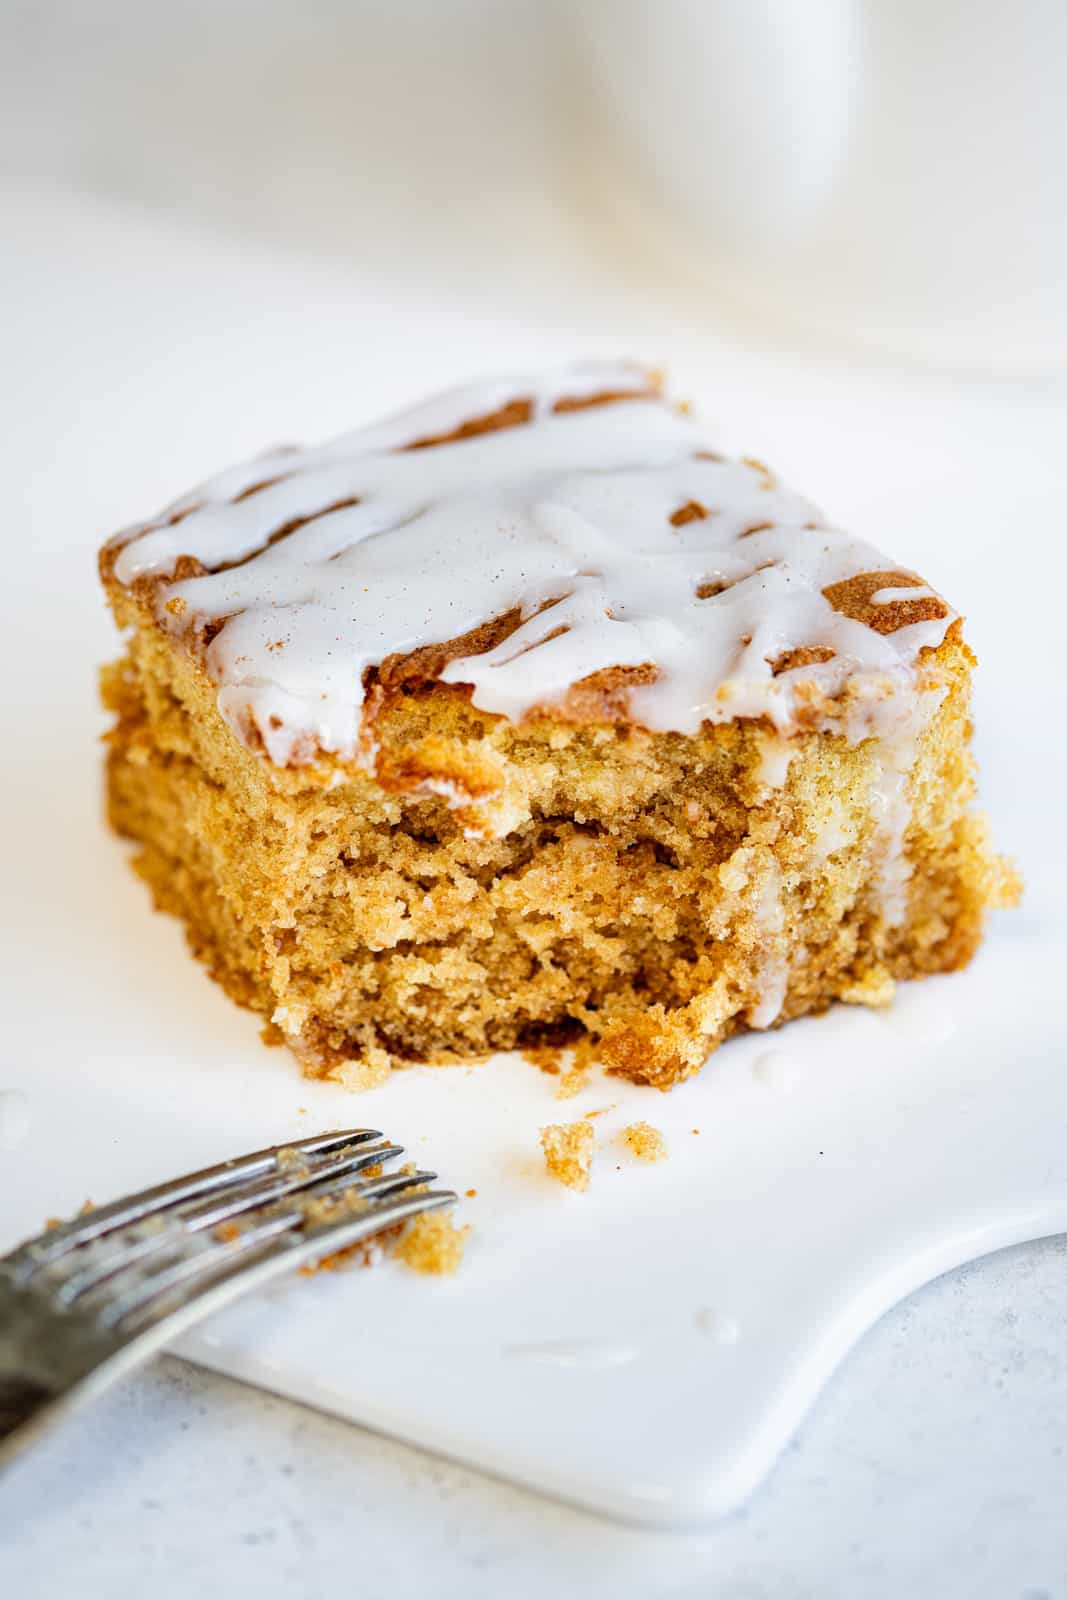 Slice of Cinnamon Roll cake with bite taken out